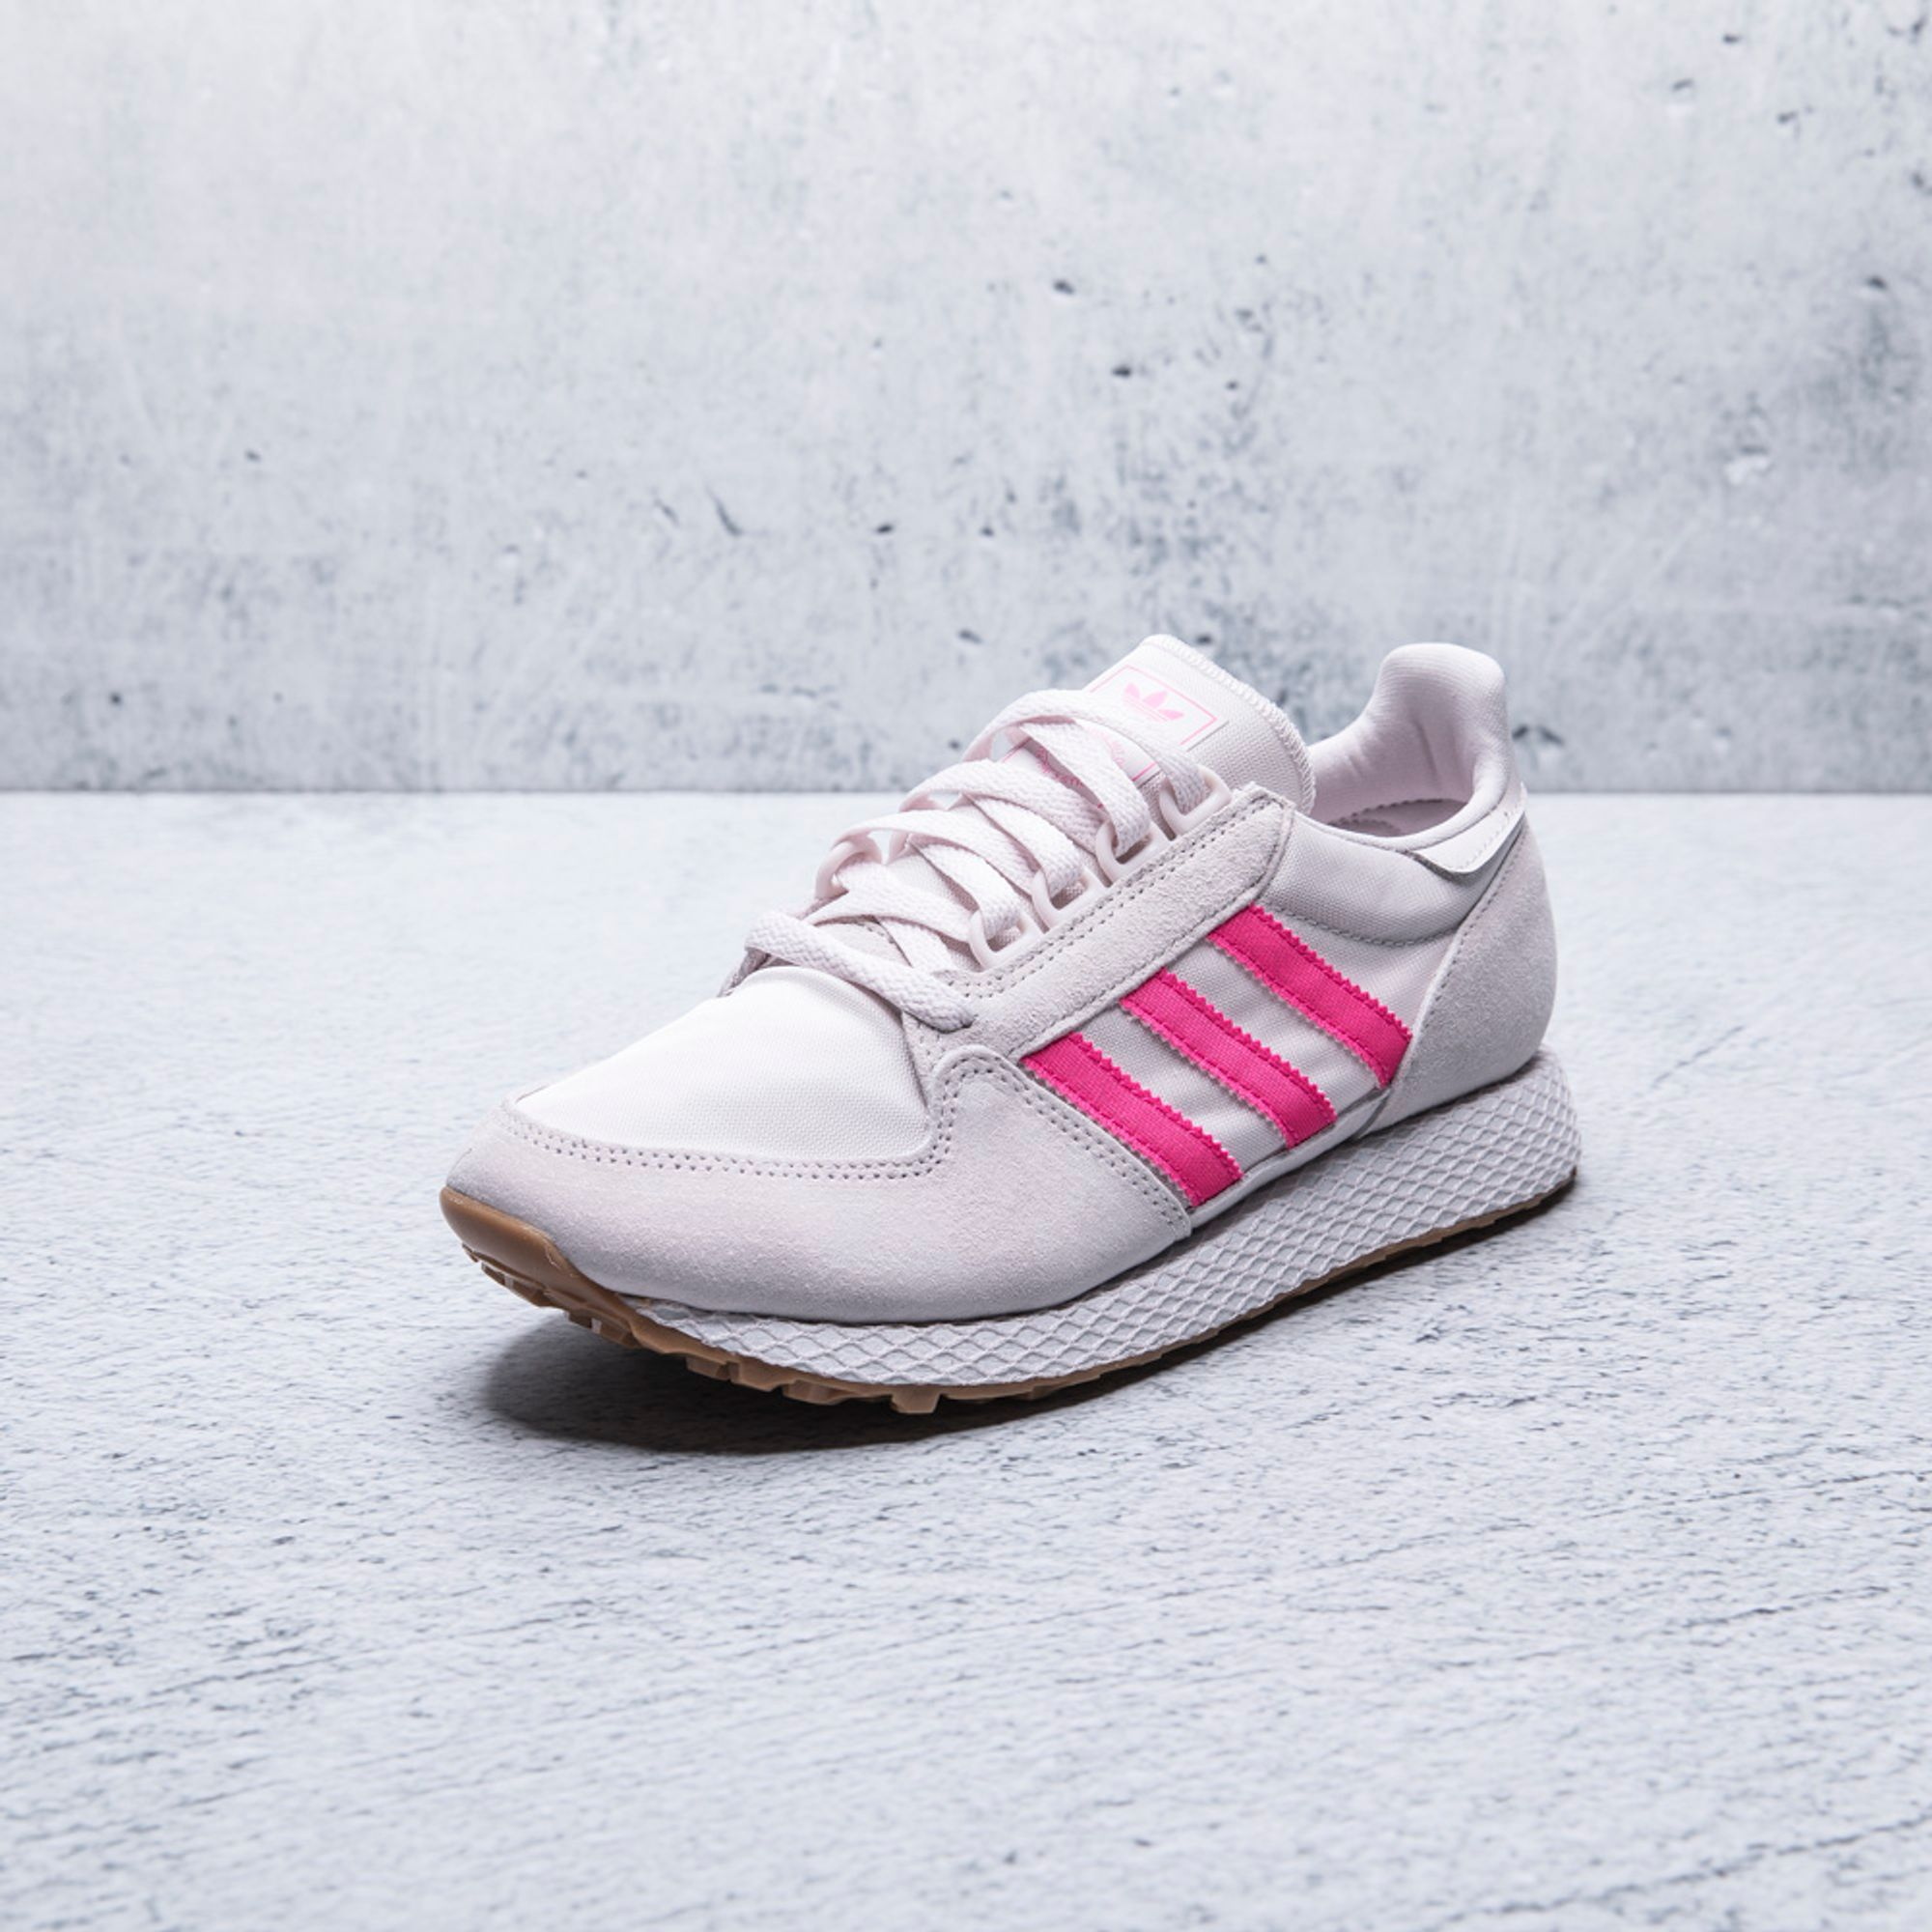 Tenis Adidas ORIGINALS ADIDAS Mujer EE5847 FOREST GROVE